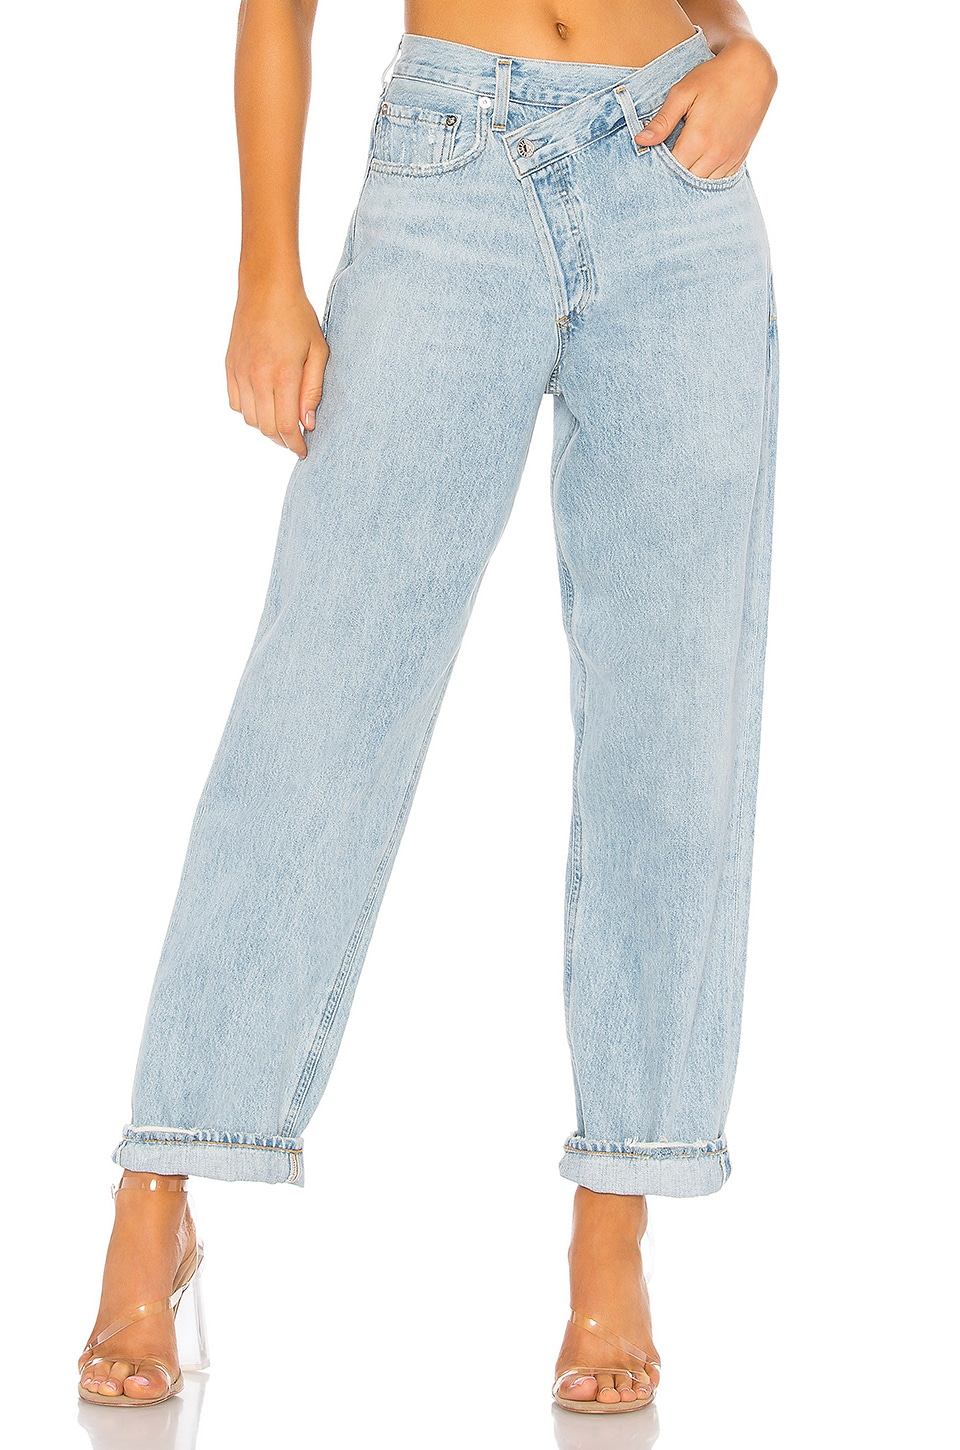 Criss Cross Upsized Jean             AGOLDE                                                                                                       CA$ 264.00 17